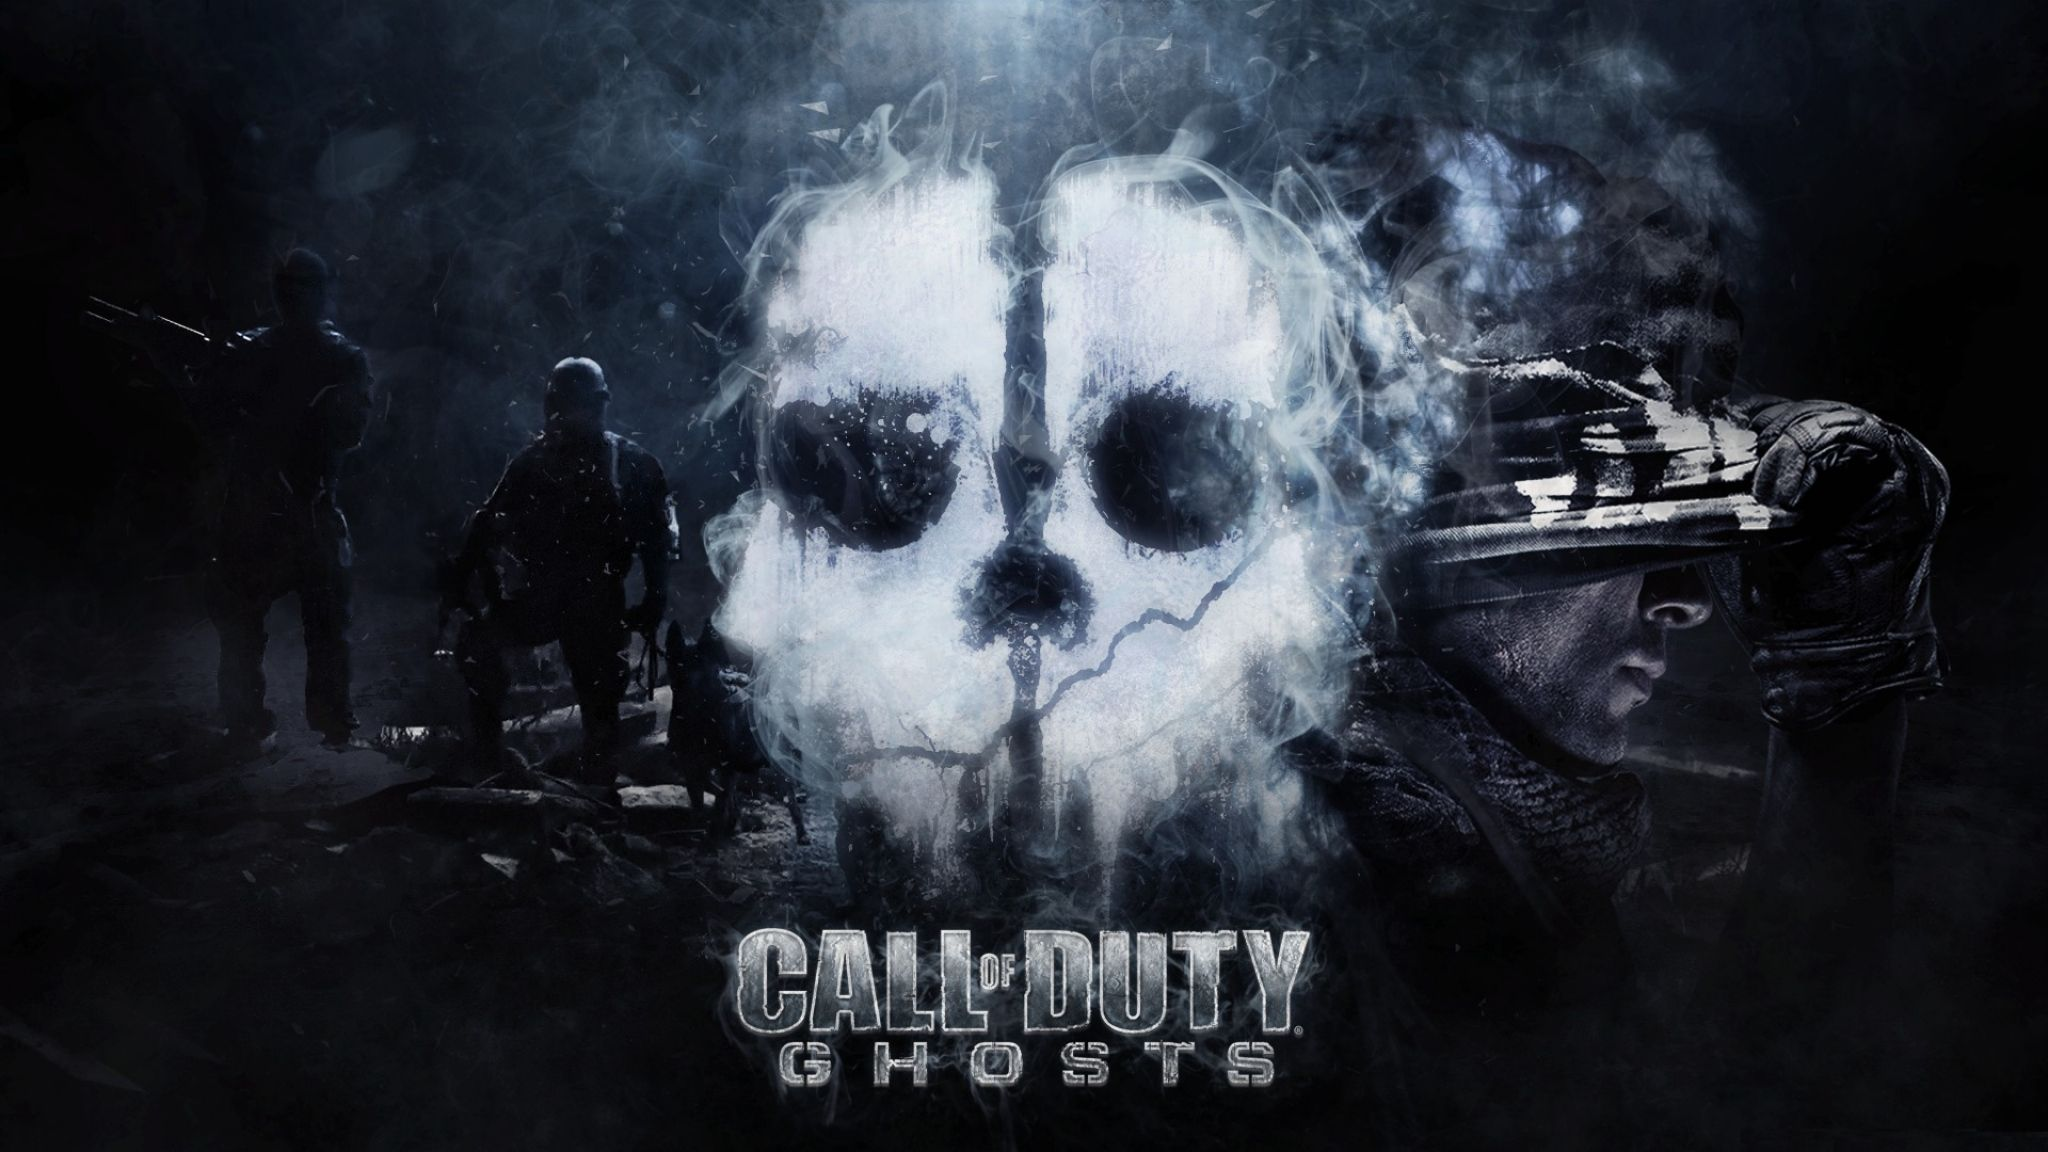 Download Wallpaper 2048x1152 Call Of Duty Ghosts Cod Ghost Call Of Duty Ghosts Call Of Duty Call Of Duty Zombies